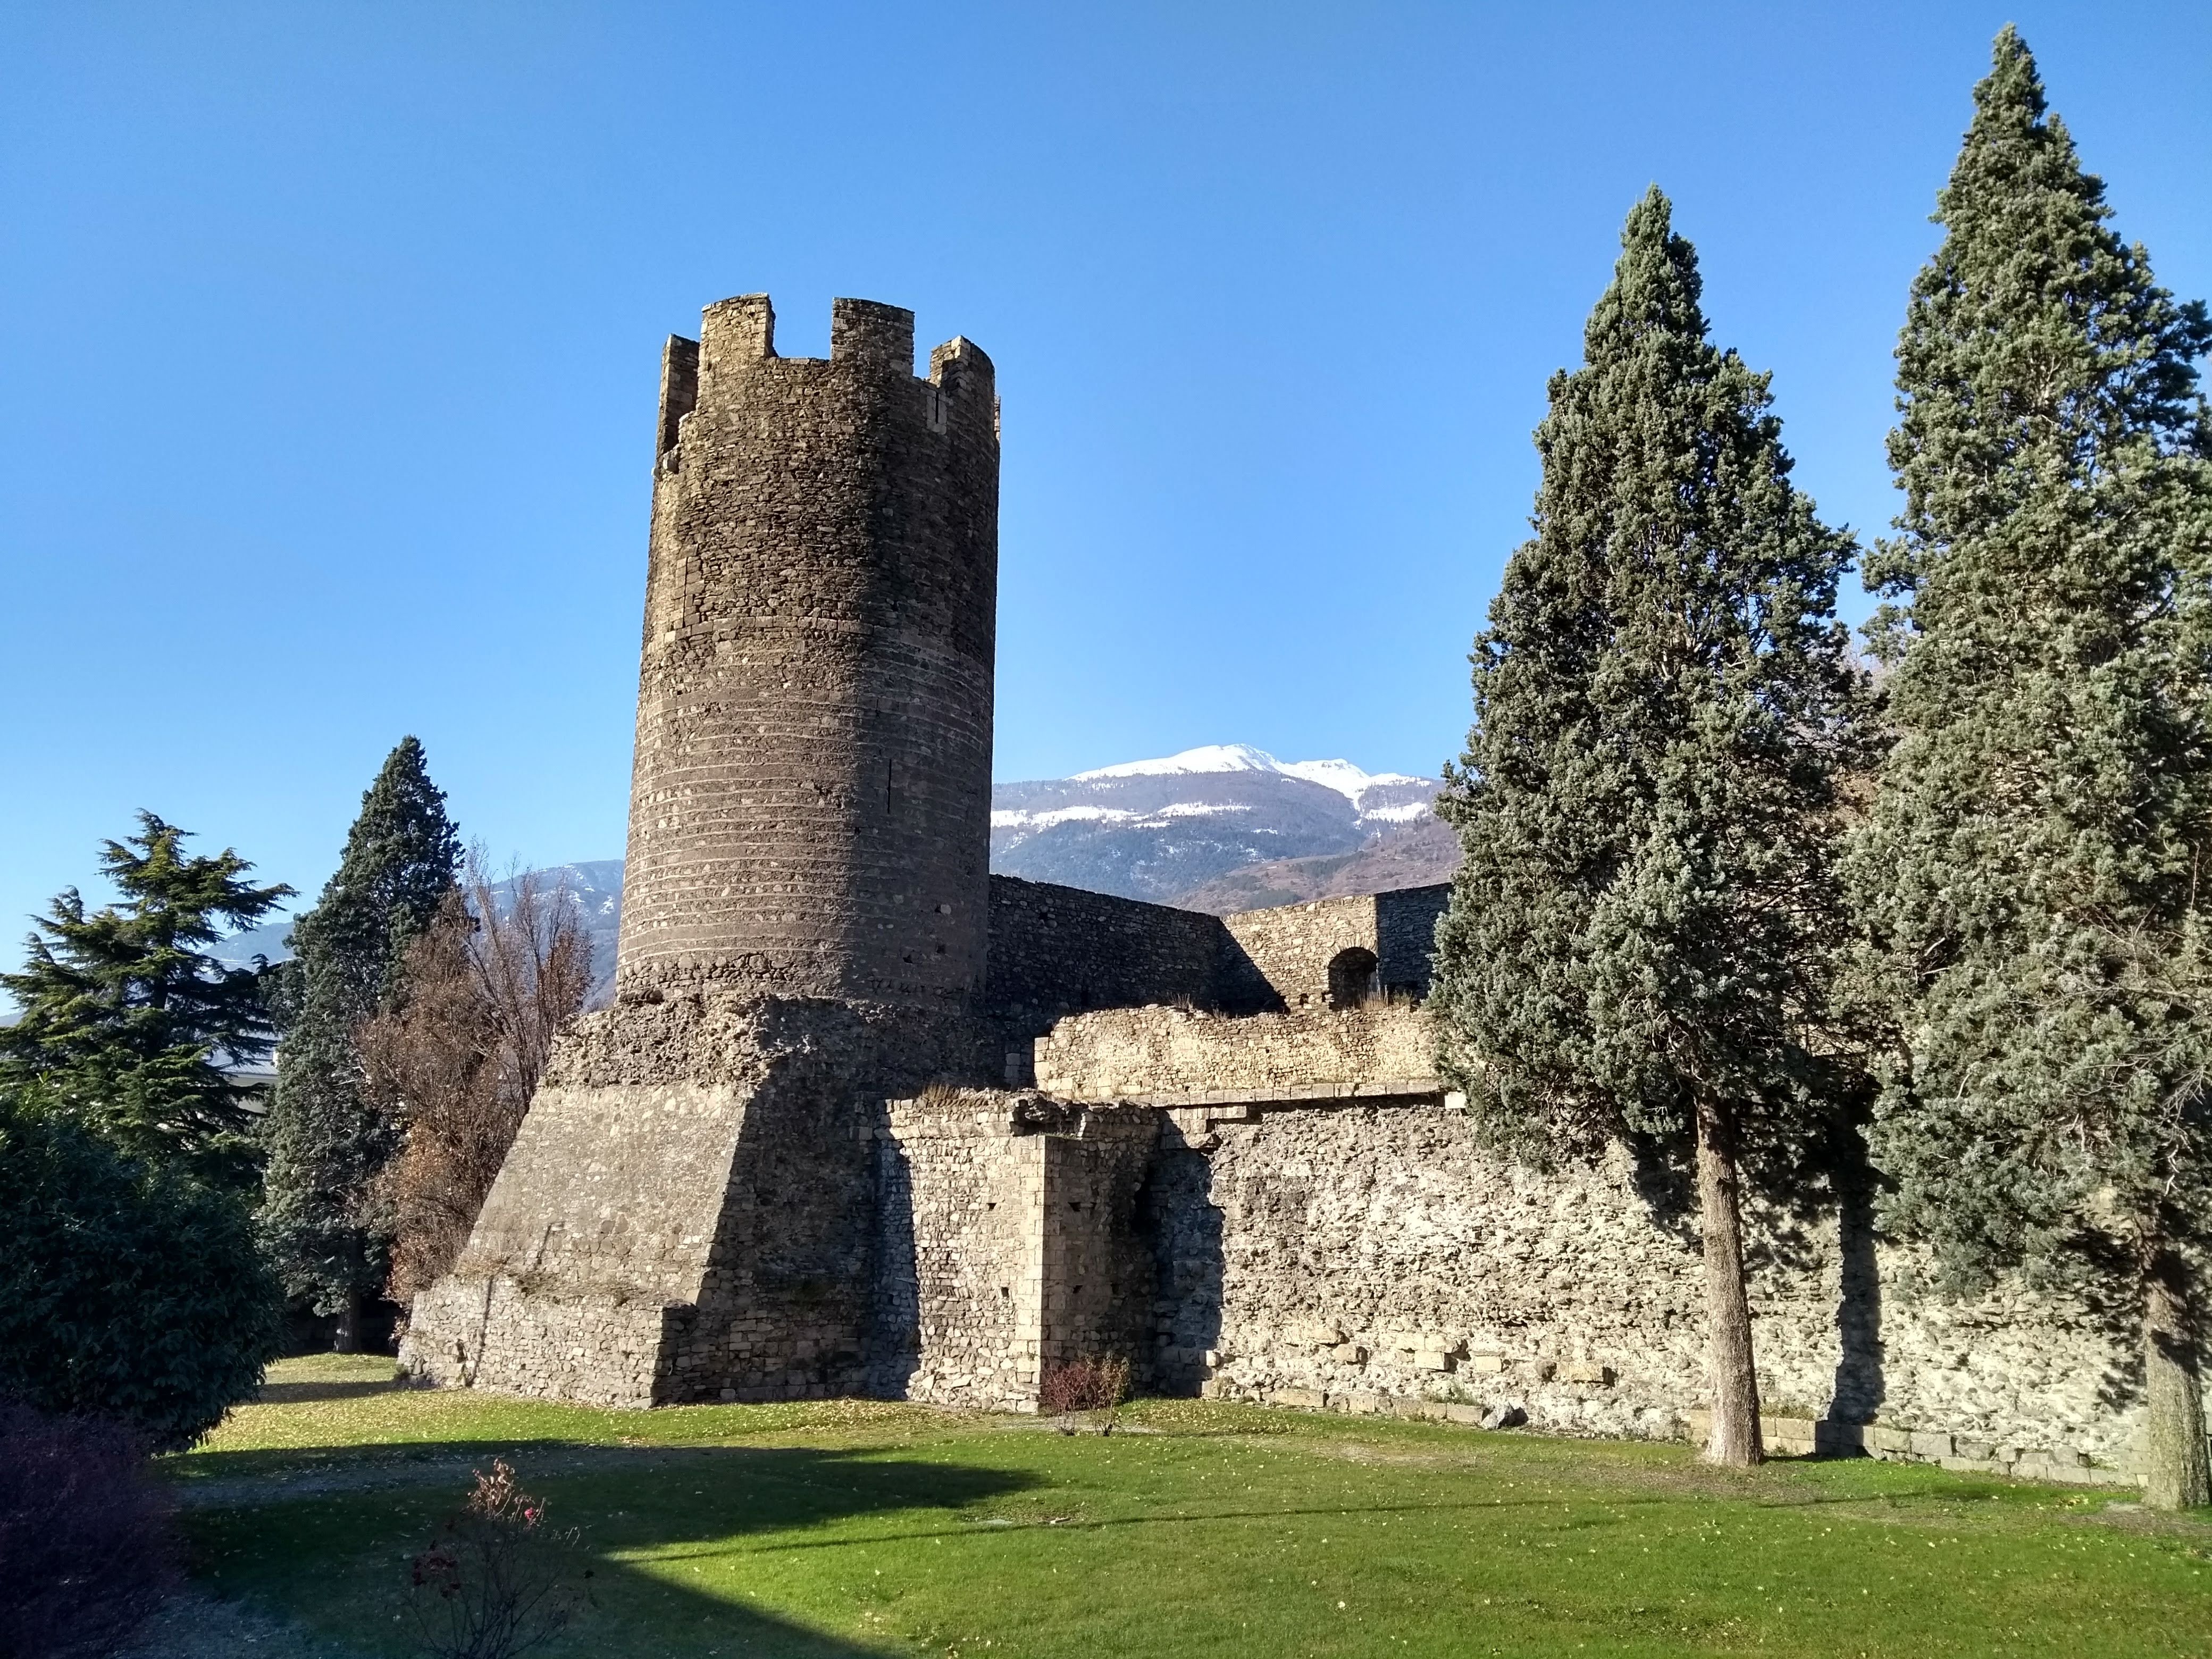 Aosta Valley castles and sights